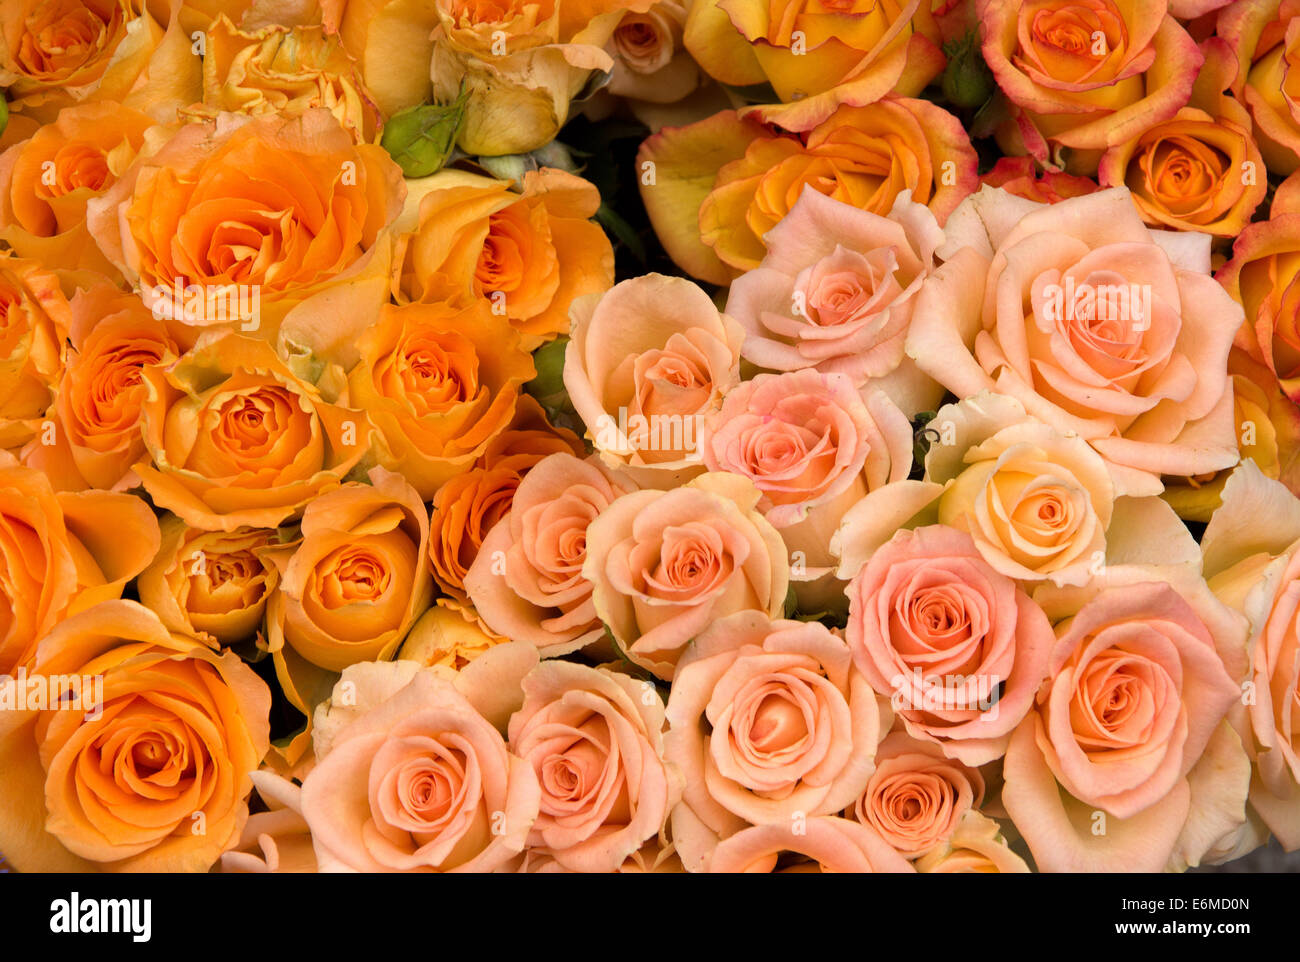 Group of pink and orange roses - Stock Image